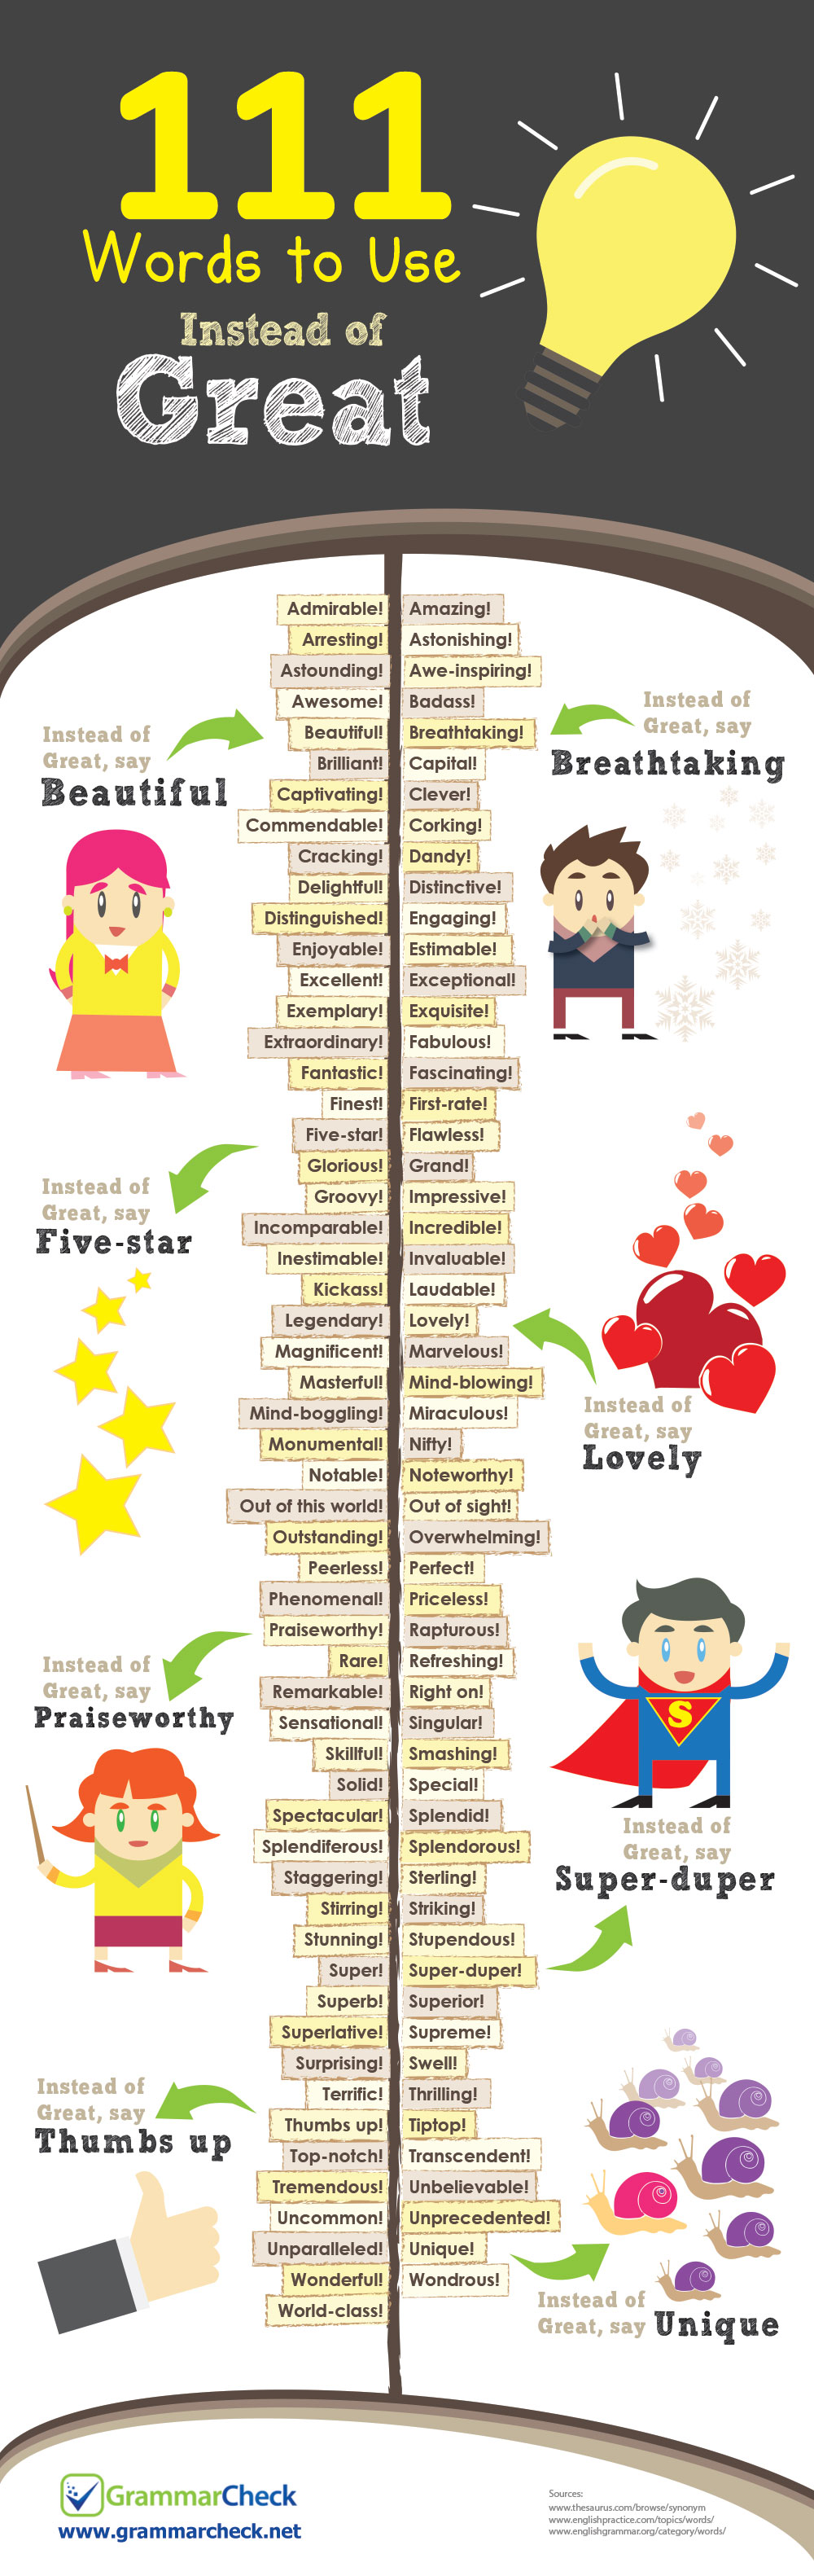 111 Words to Use Instead of Great (Infographic)